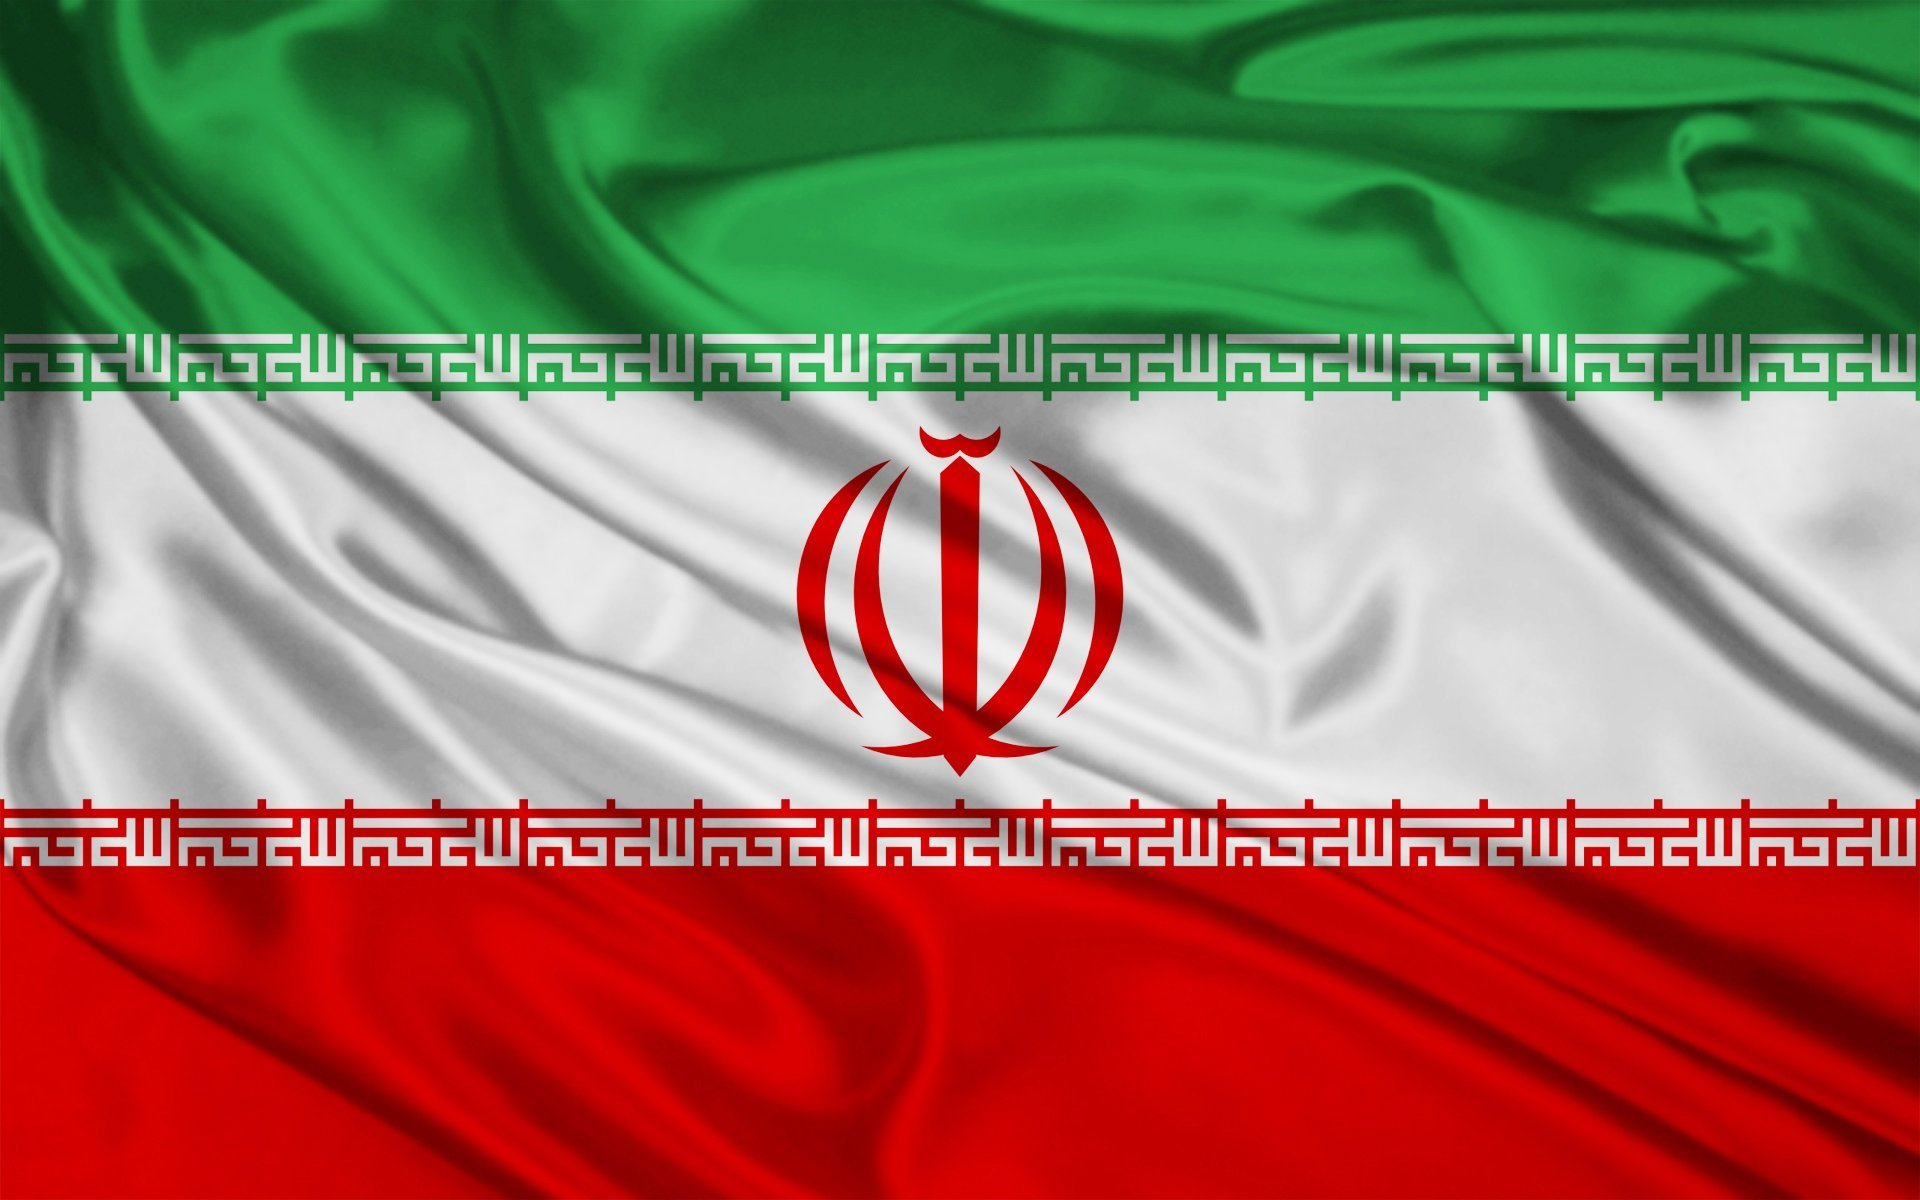 iran is the islamic republic of iran Articles tagged 'islamic-republic-of-iran' the long-suffering europeans trying to save the iran deal trump and netanyahu seem intent on kicking over the eu's carefully built international.